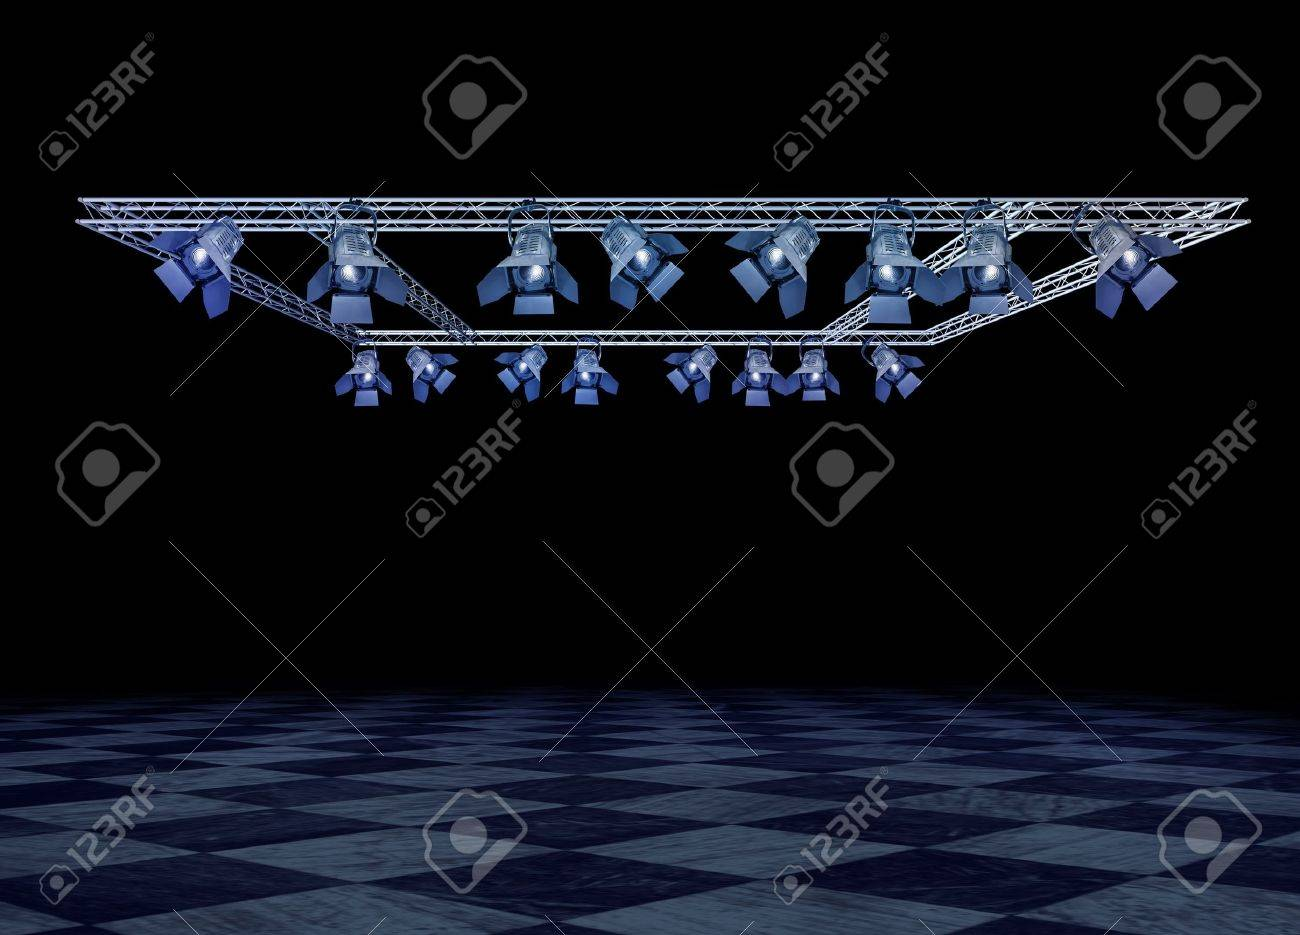 Rock stage lighting with professional spot lights and truss construction Stock Photo - 8842413